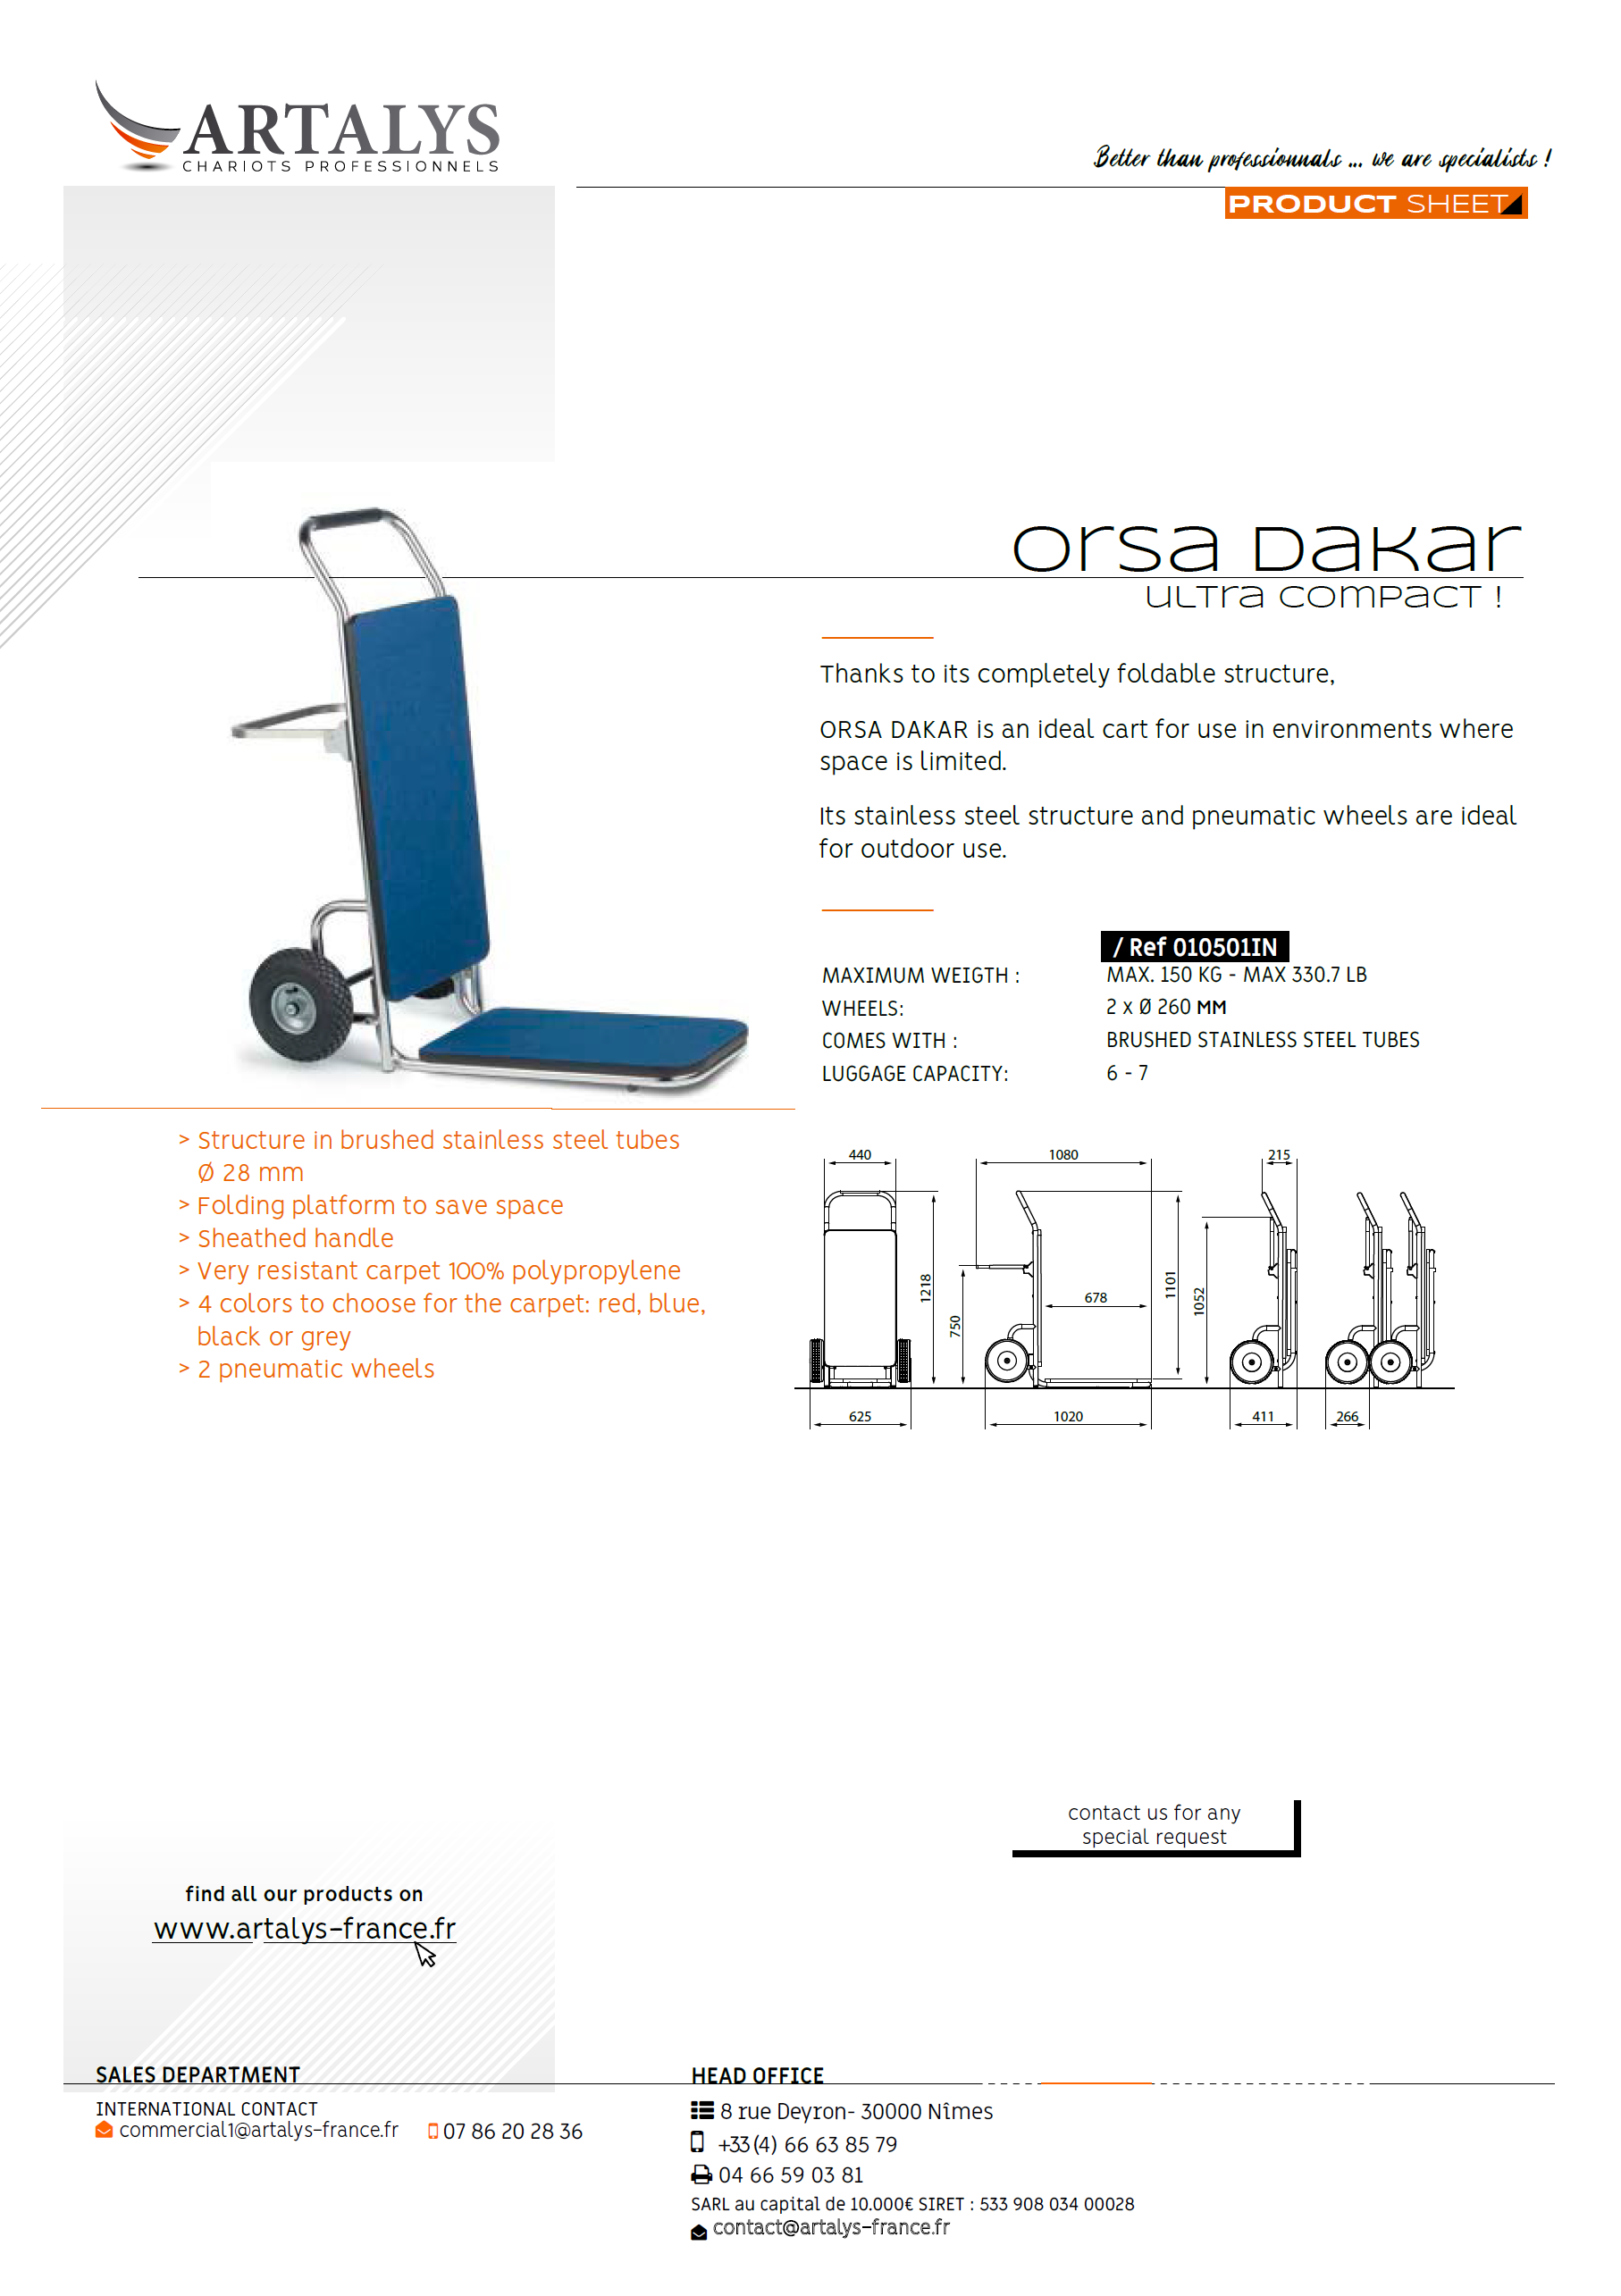 Product sheet of our luggage trolley Orsa Dakar